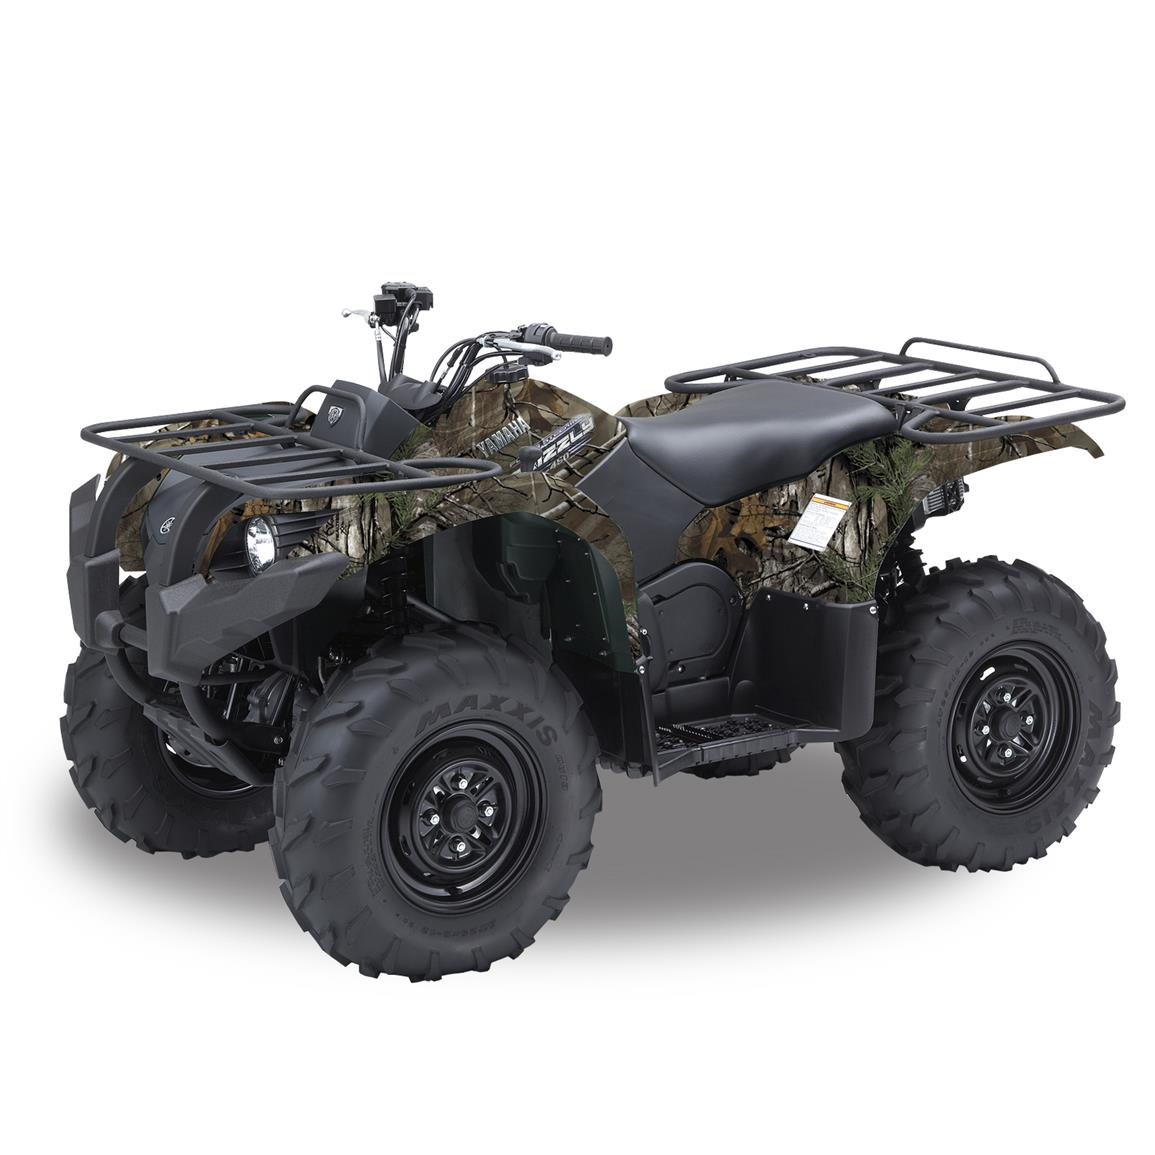 Realtree Camo Graphics ATV Camo Kit, 40 Square Feet, Realtree Xtra